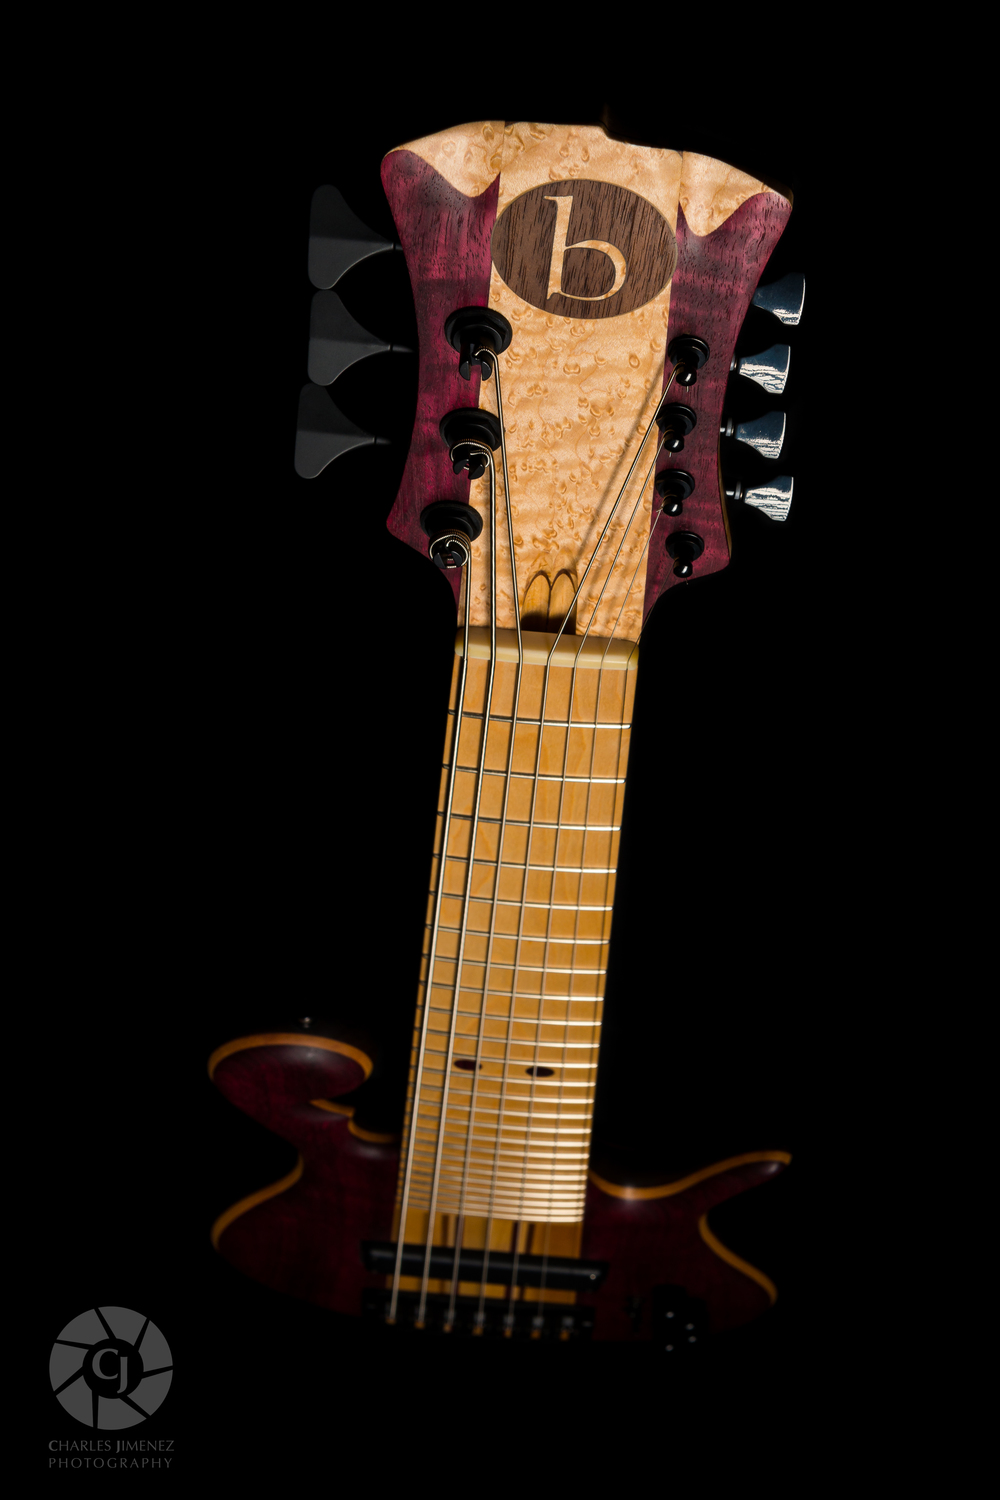 BMT Guitars_Grimace_January 04 2014_05.jpg